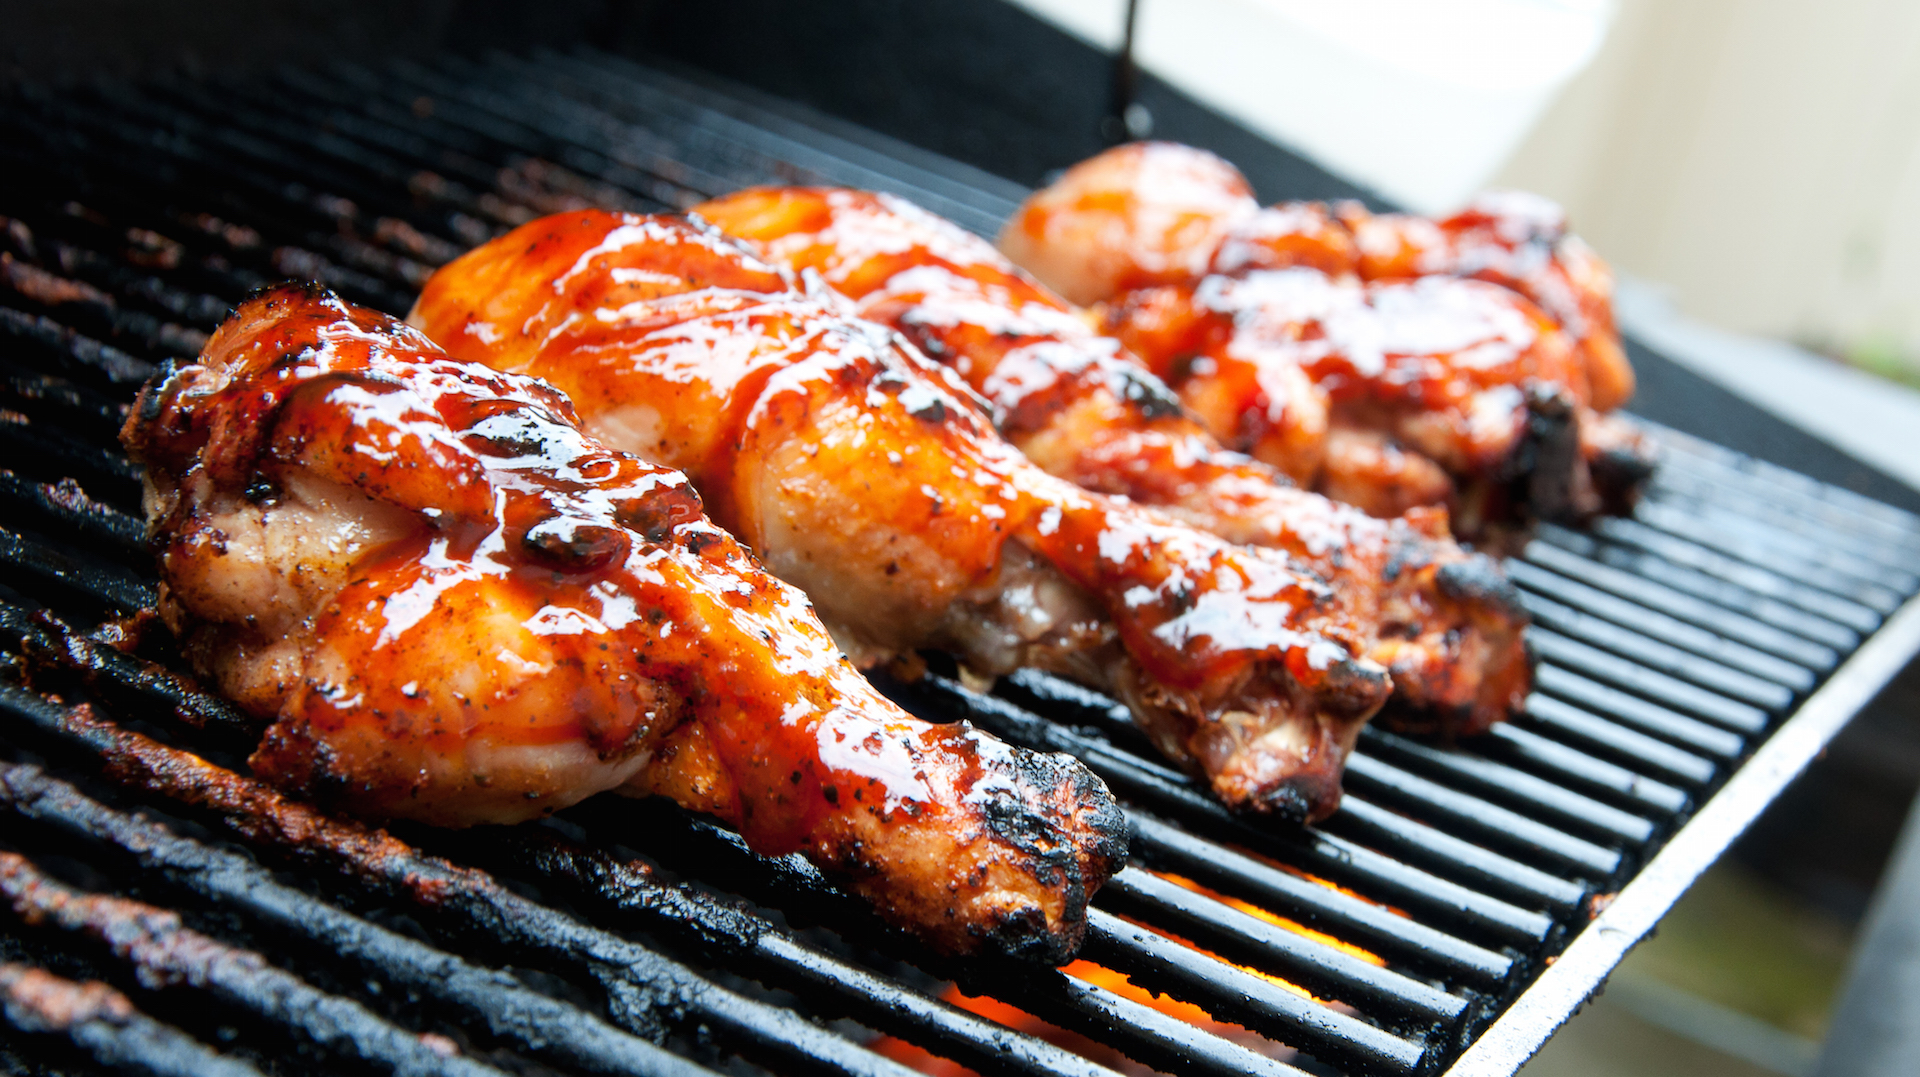 Chicken barbecuing on a gas grill.